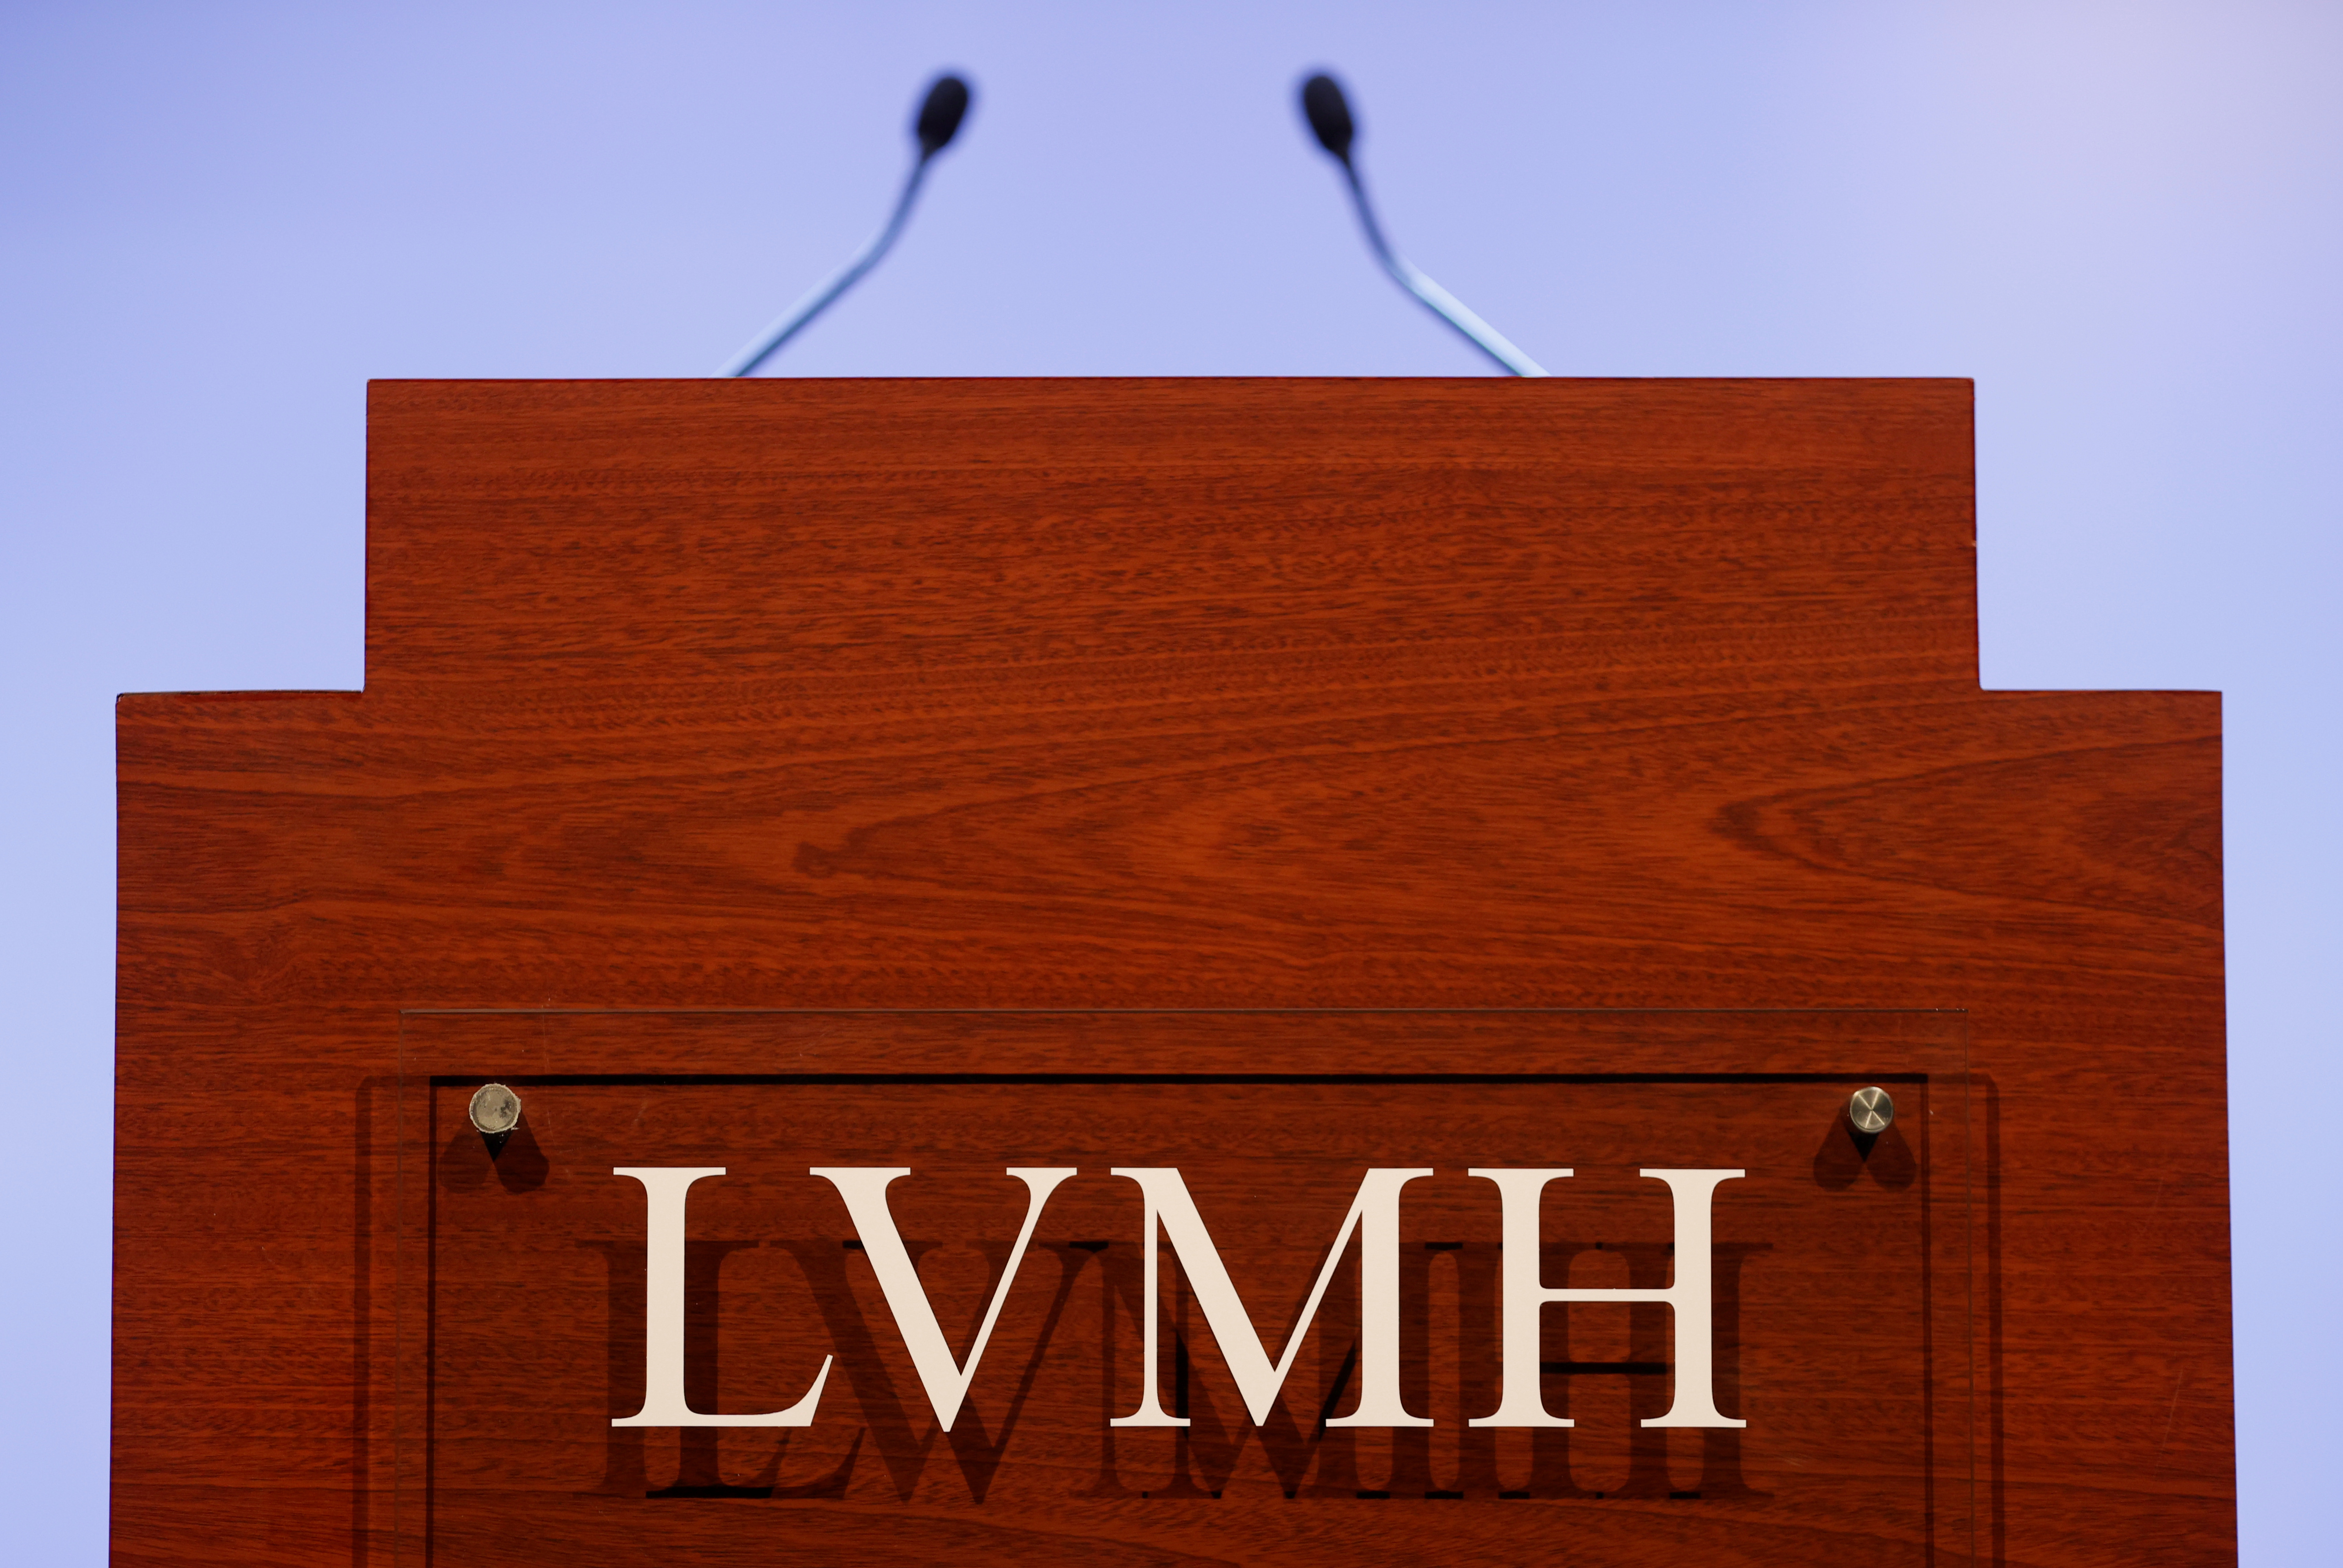 A LVMH luxury group logo is seen prior to the announcement of their 2019 results in Paris, France, January 28, 2020. REUTERS/Christian Hartmann/Files